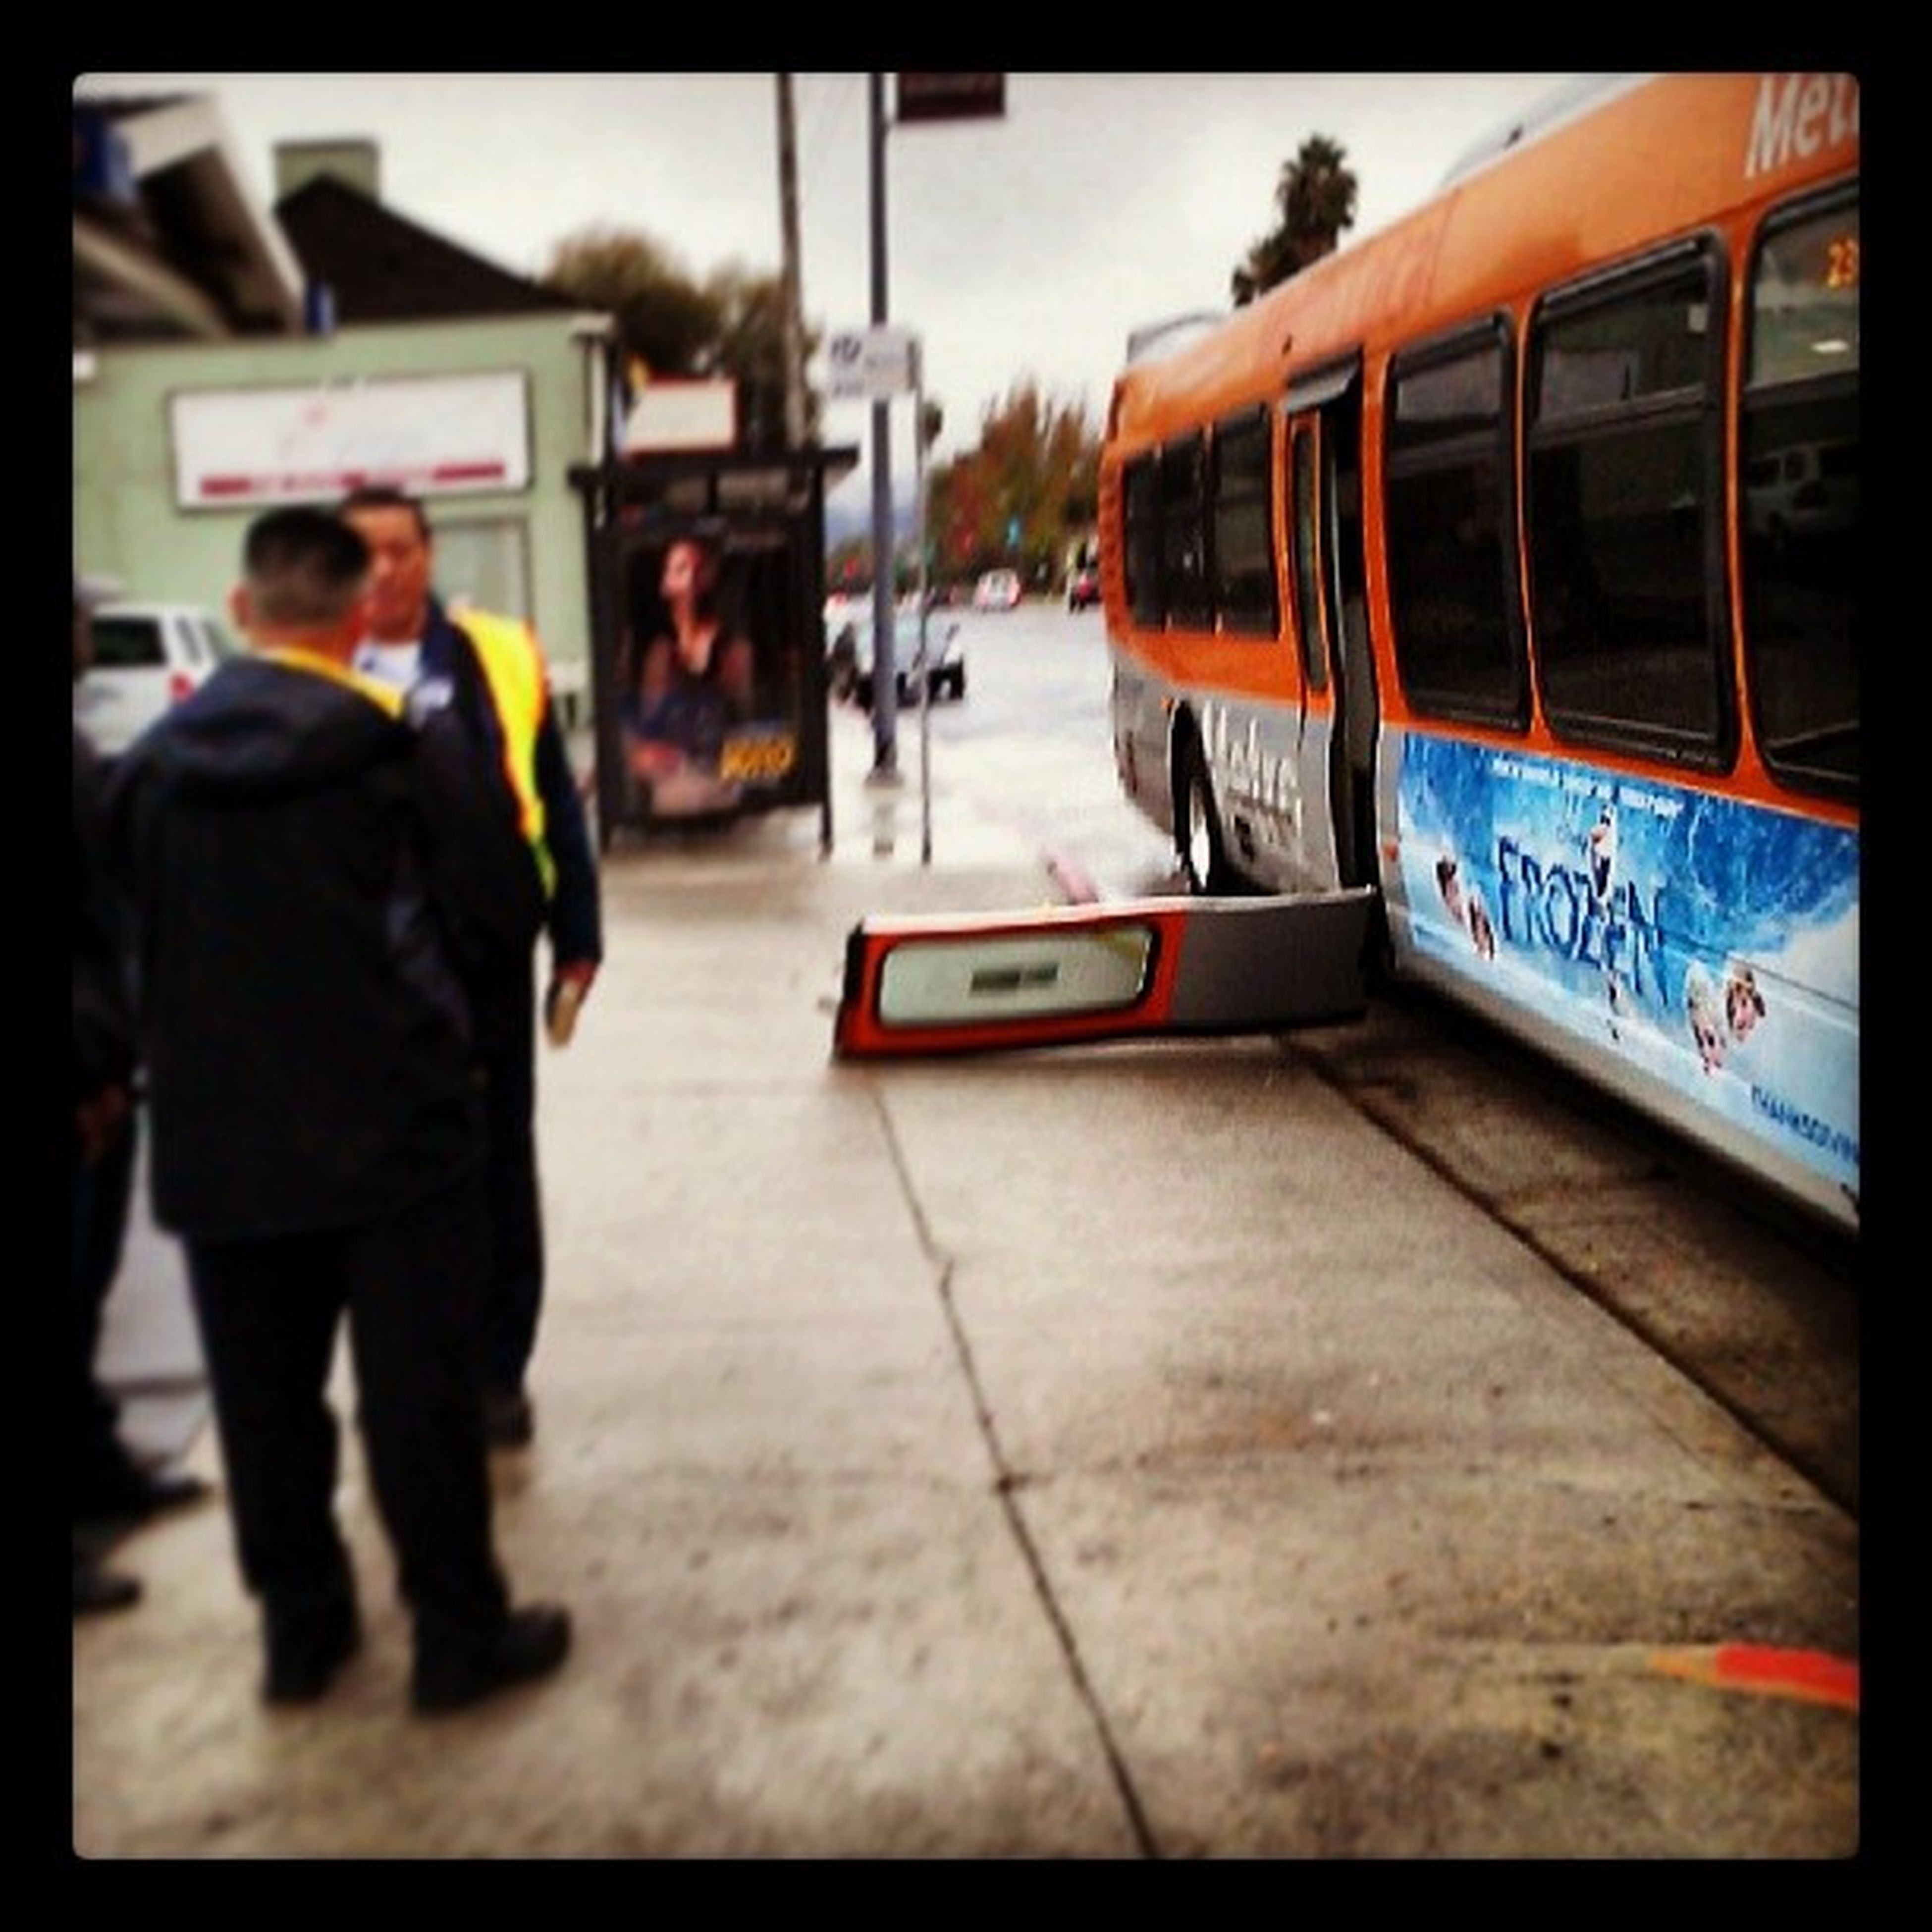 Either the bus driver was holding somebody hostage, or somebody had an epiphany about public transit.